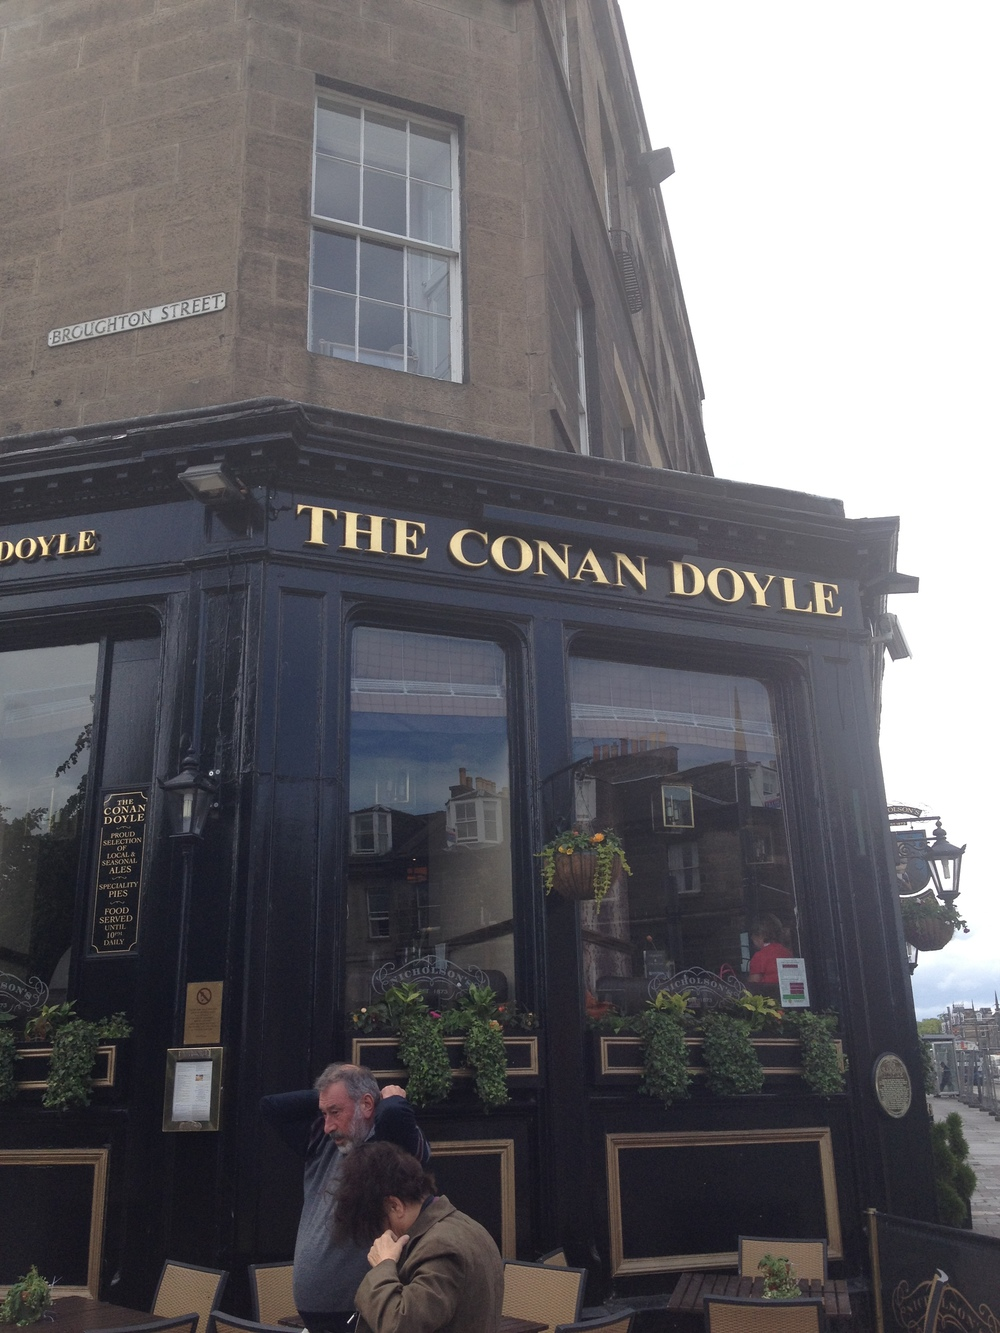 The Conan Doyle (Edinburgh, Scotland)  The Conan Doyle is a pub on Picardy Place in Old Town, Edinburgh dedicated to the life and writings of Sir Arthur Conan Doyle and all things Sherlock Holmes. Just across the way is the house Doyle was born in, but the pub is a far grander (and more comfortable) tribute. Their array of Scottish ales is only matched by the number of Holmes novels they have stacked on the wall-to-wall bookcases.